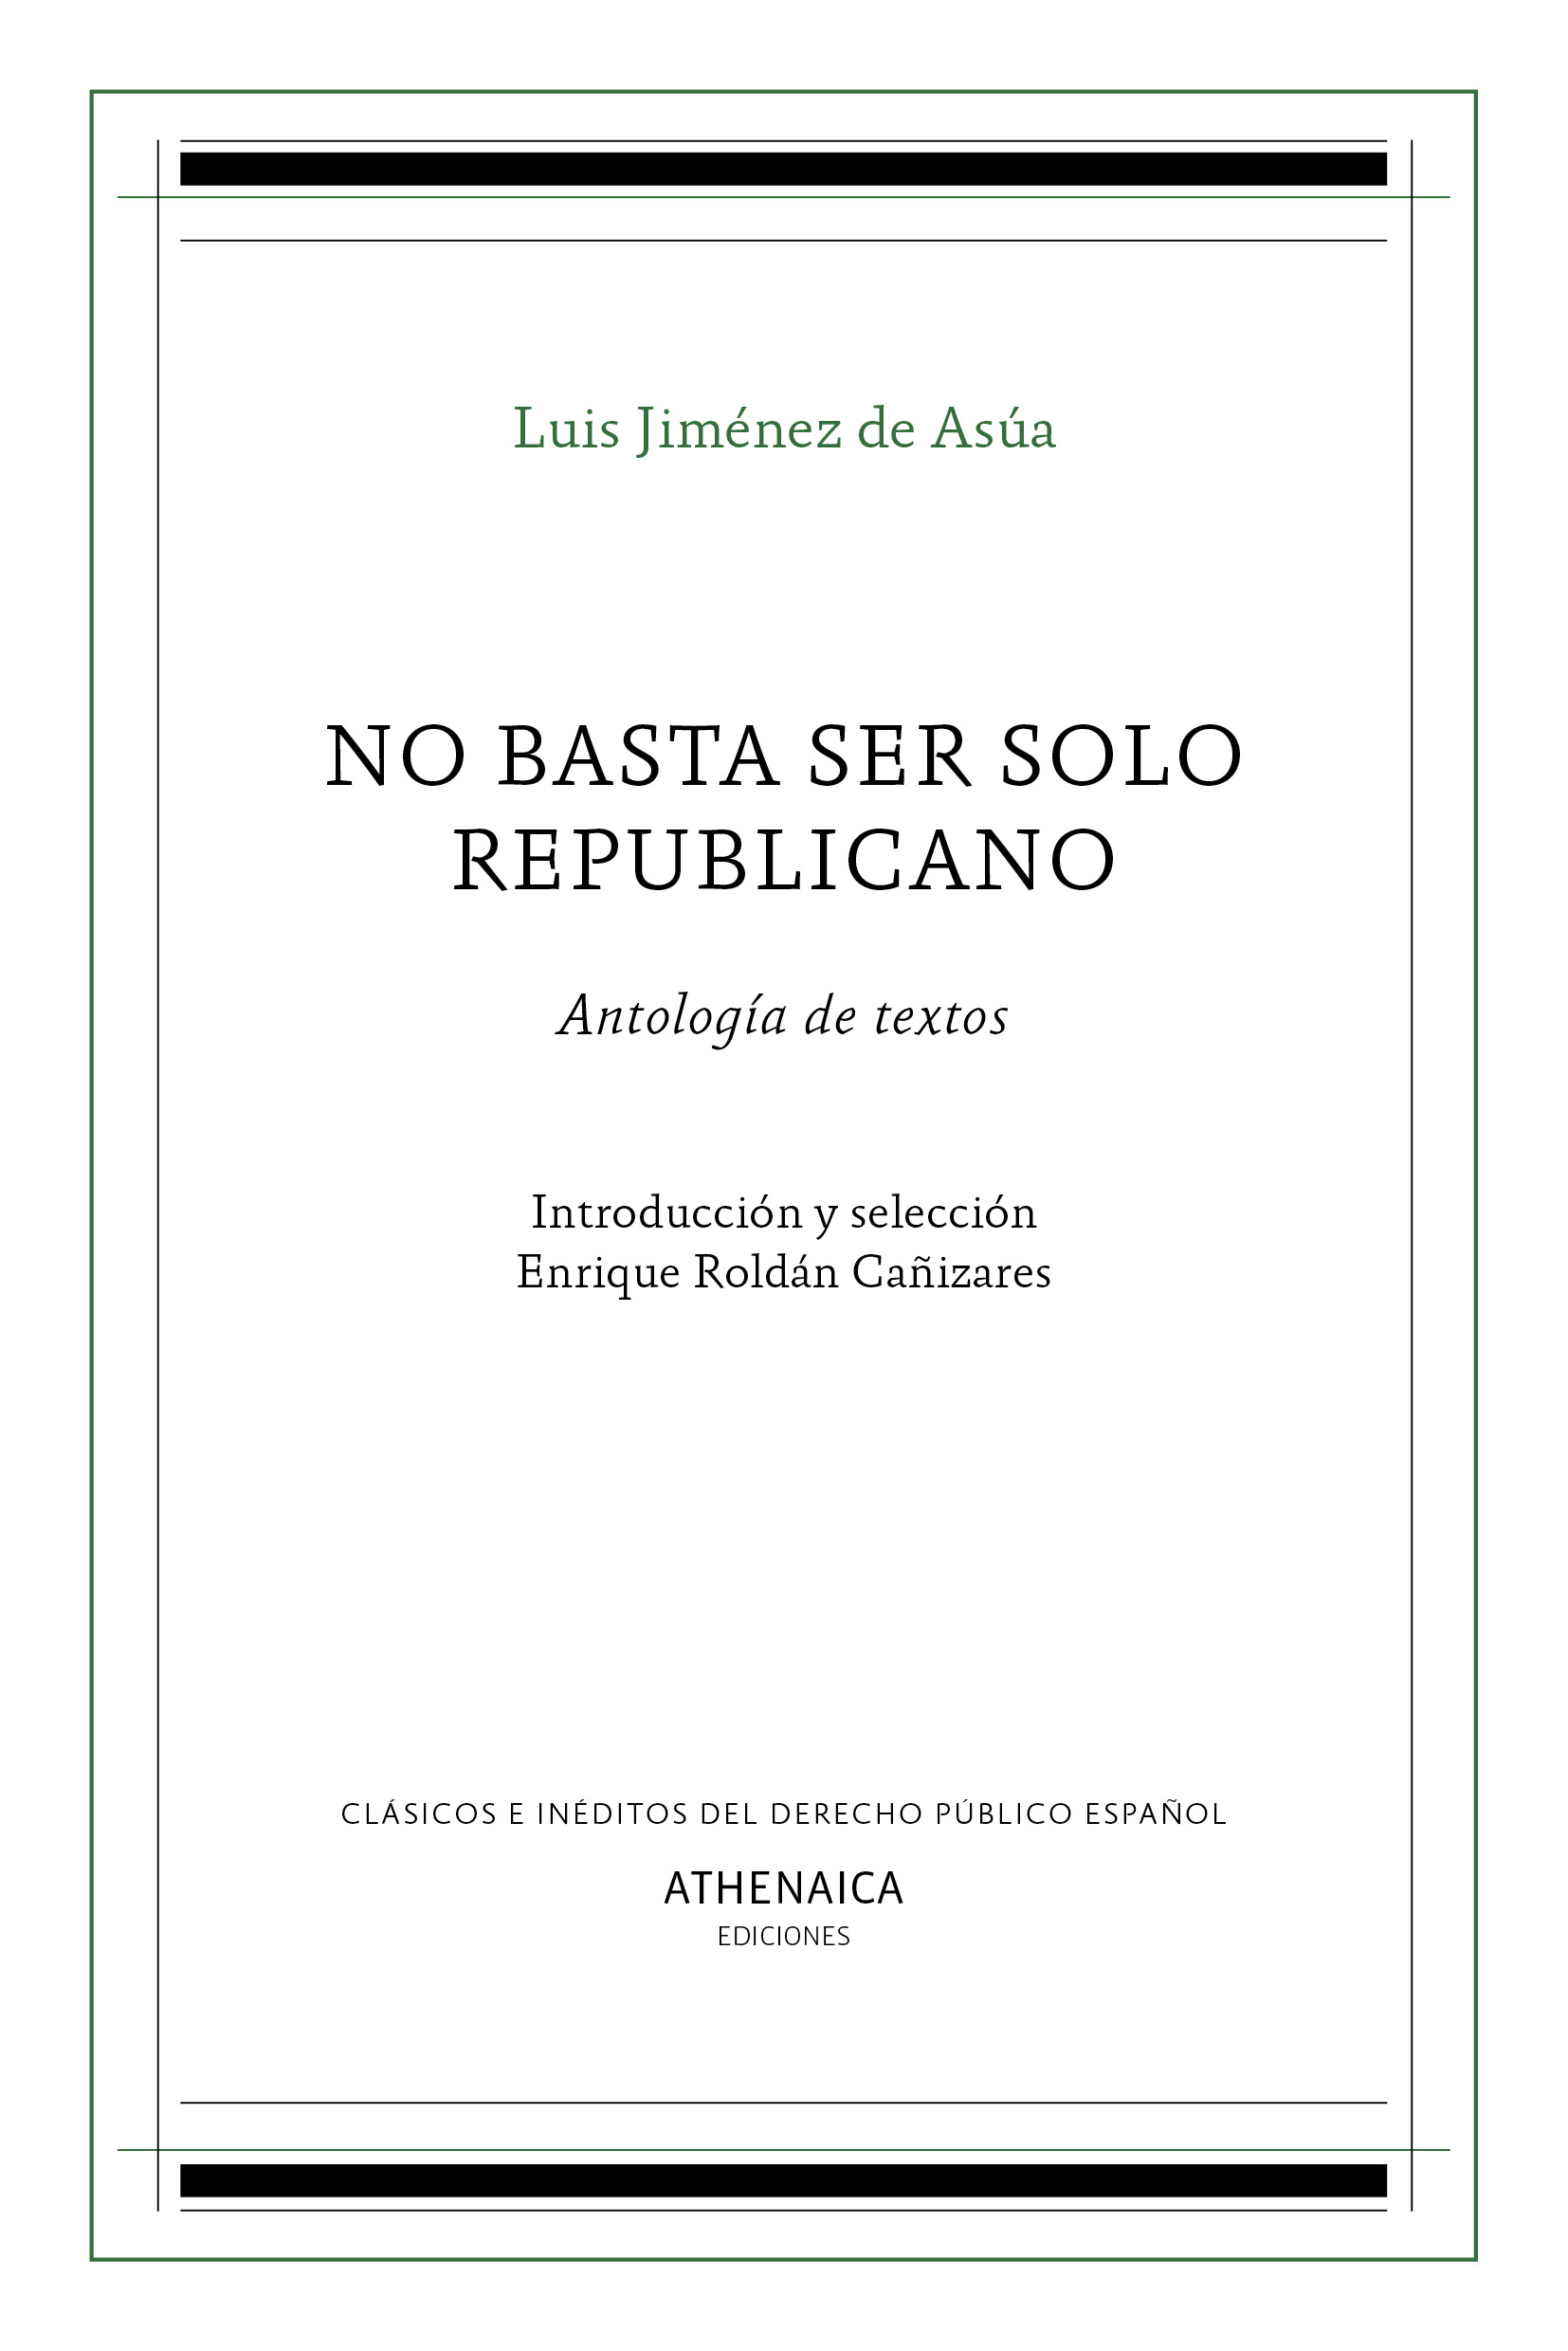 No basta ser solo republicano